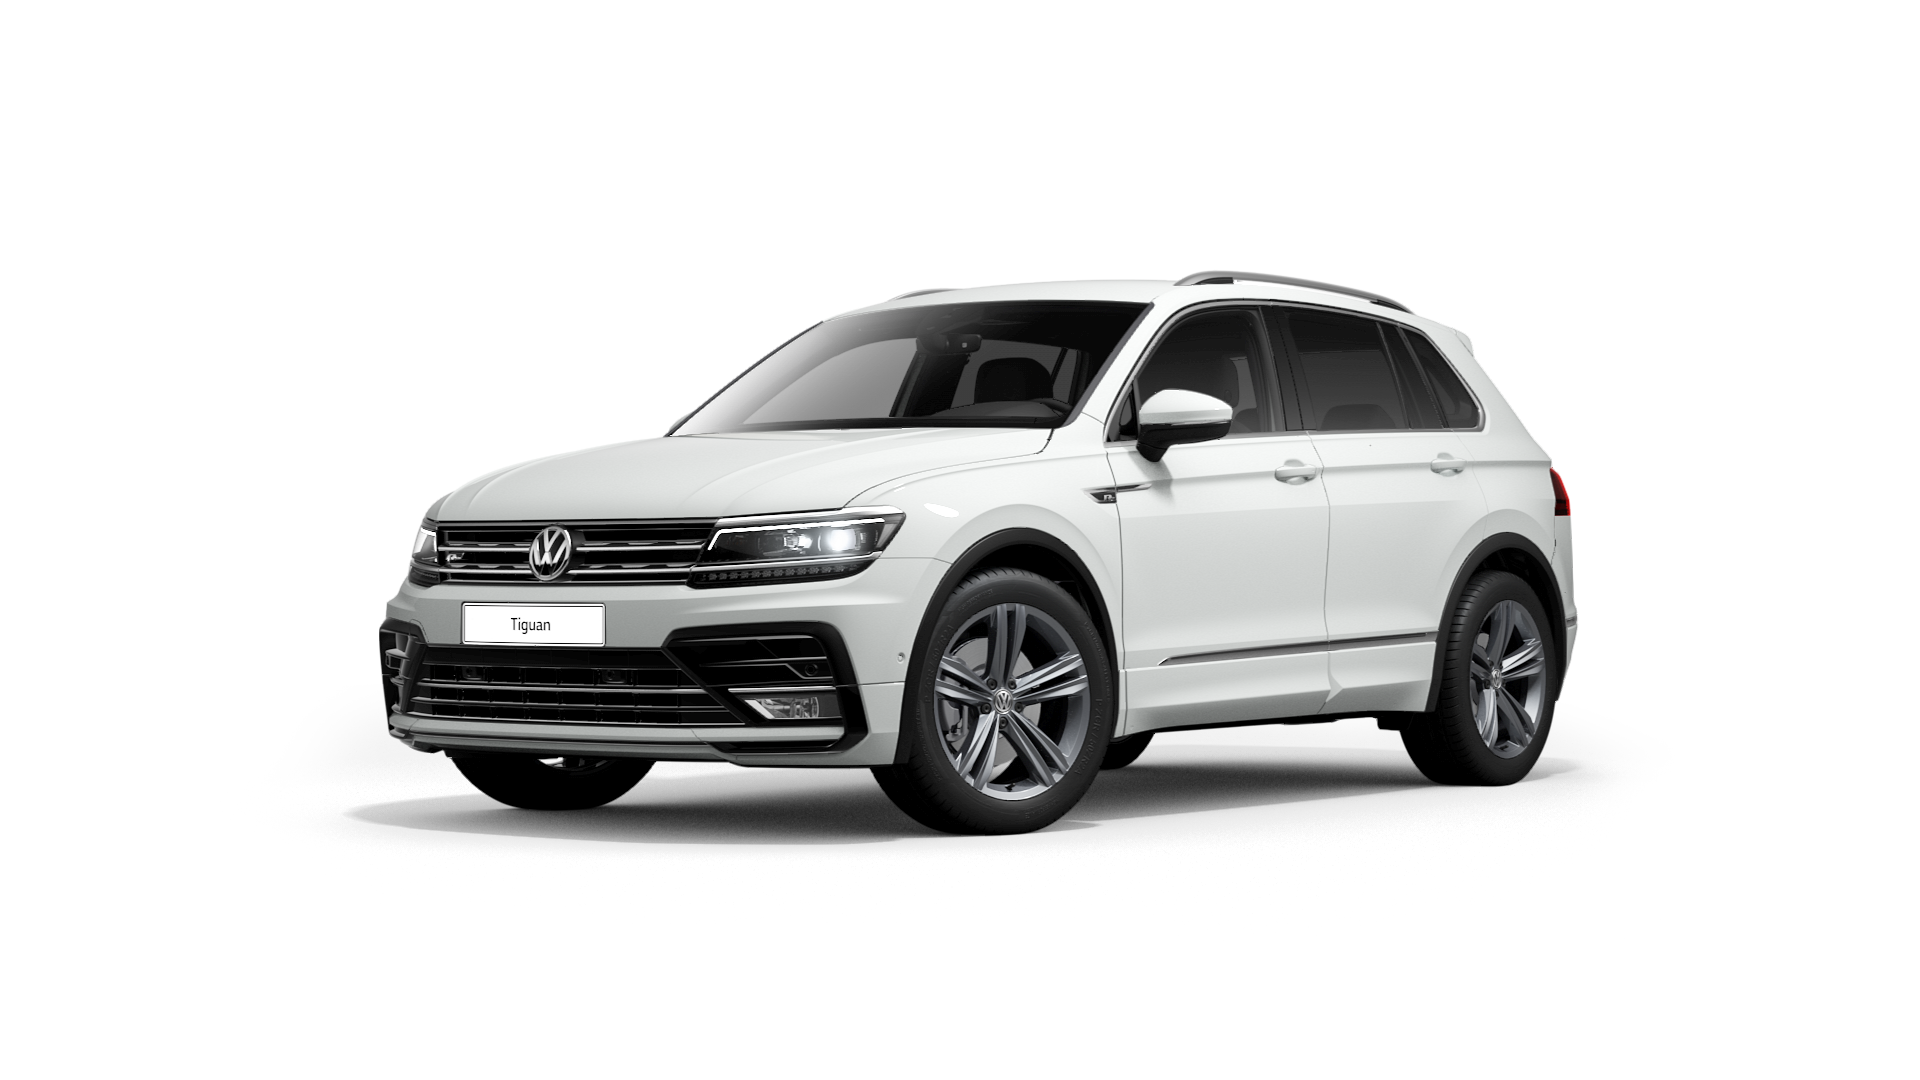 Tiguan Highline 2,0 TSI  DSG 4Mot / 190 CP/140 kW / 2.0l / Direct Shift Gearbox / 4-usi : Volkswagen Tiguan HIGHLINE